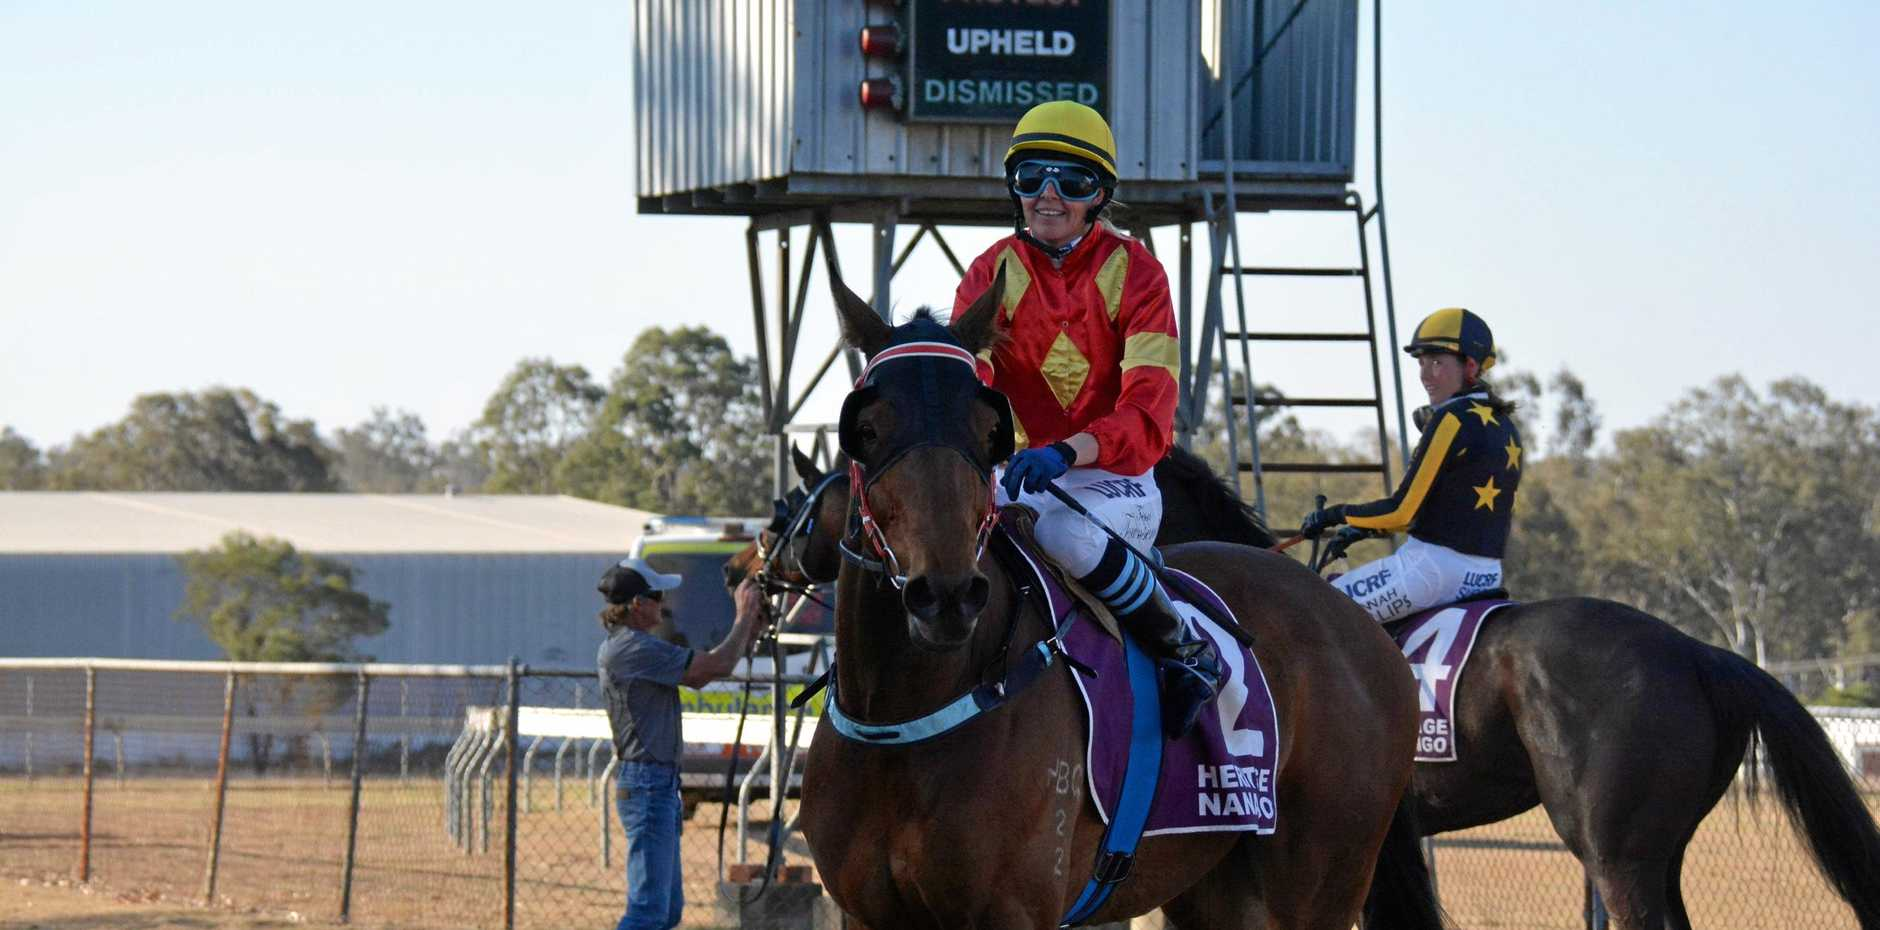 Tessa Townsend is hoping for more winners at Dalby tomorrow.